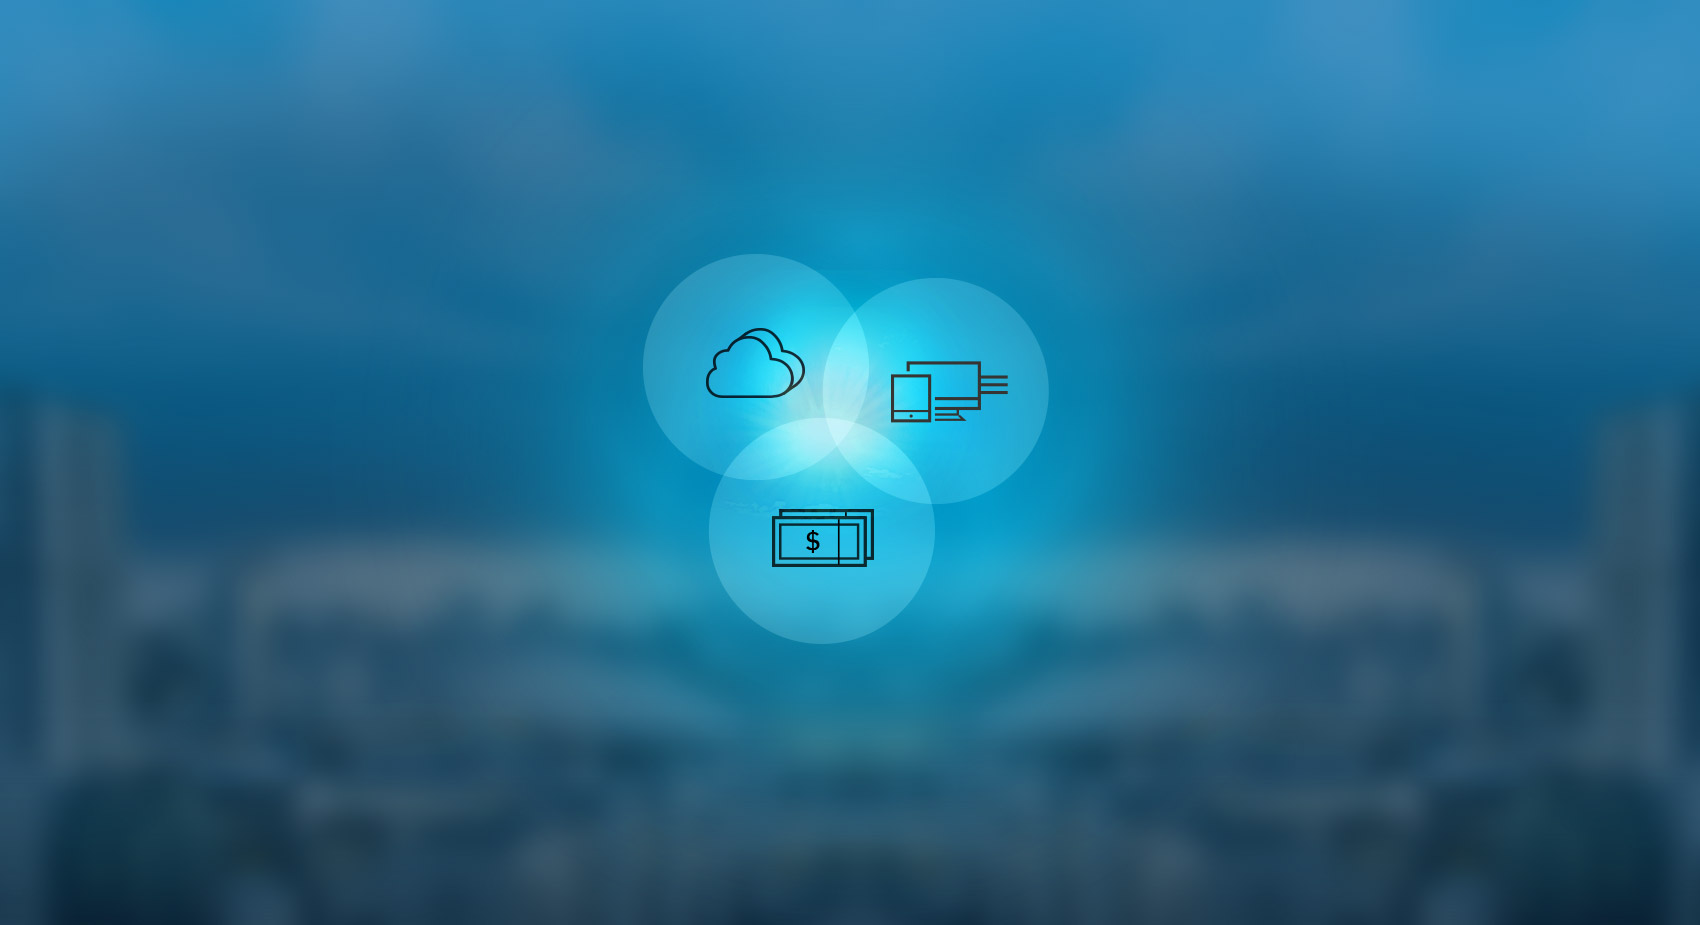 Cloud Solutions, Financial Solutions, Smart Solutions